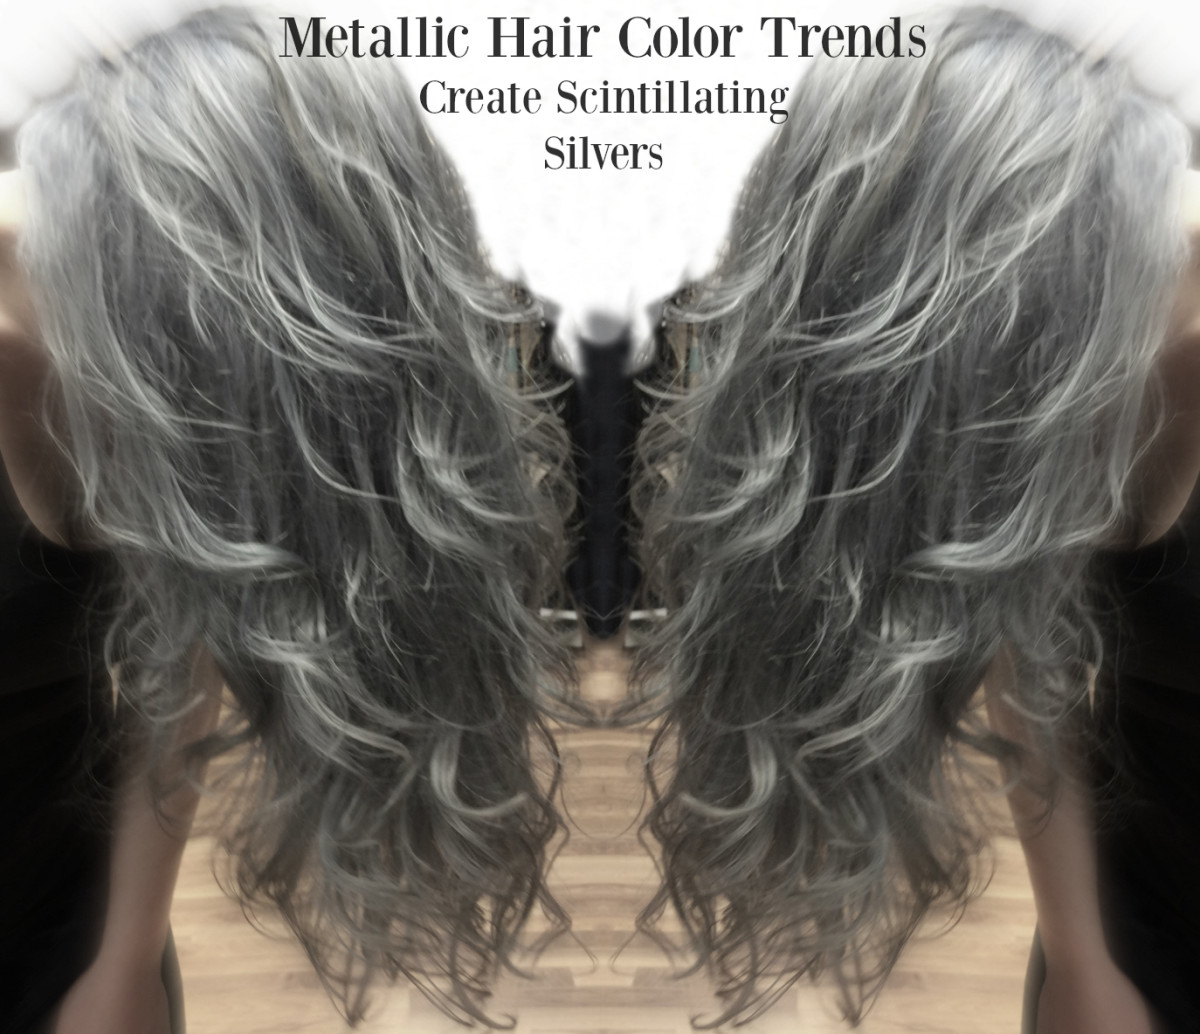 3 Metallic Hair Colors That Will Make You Look Like An A List Star